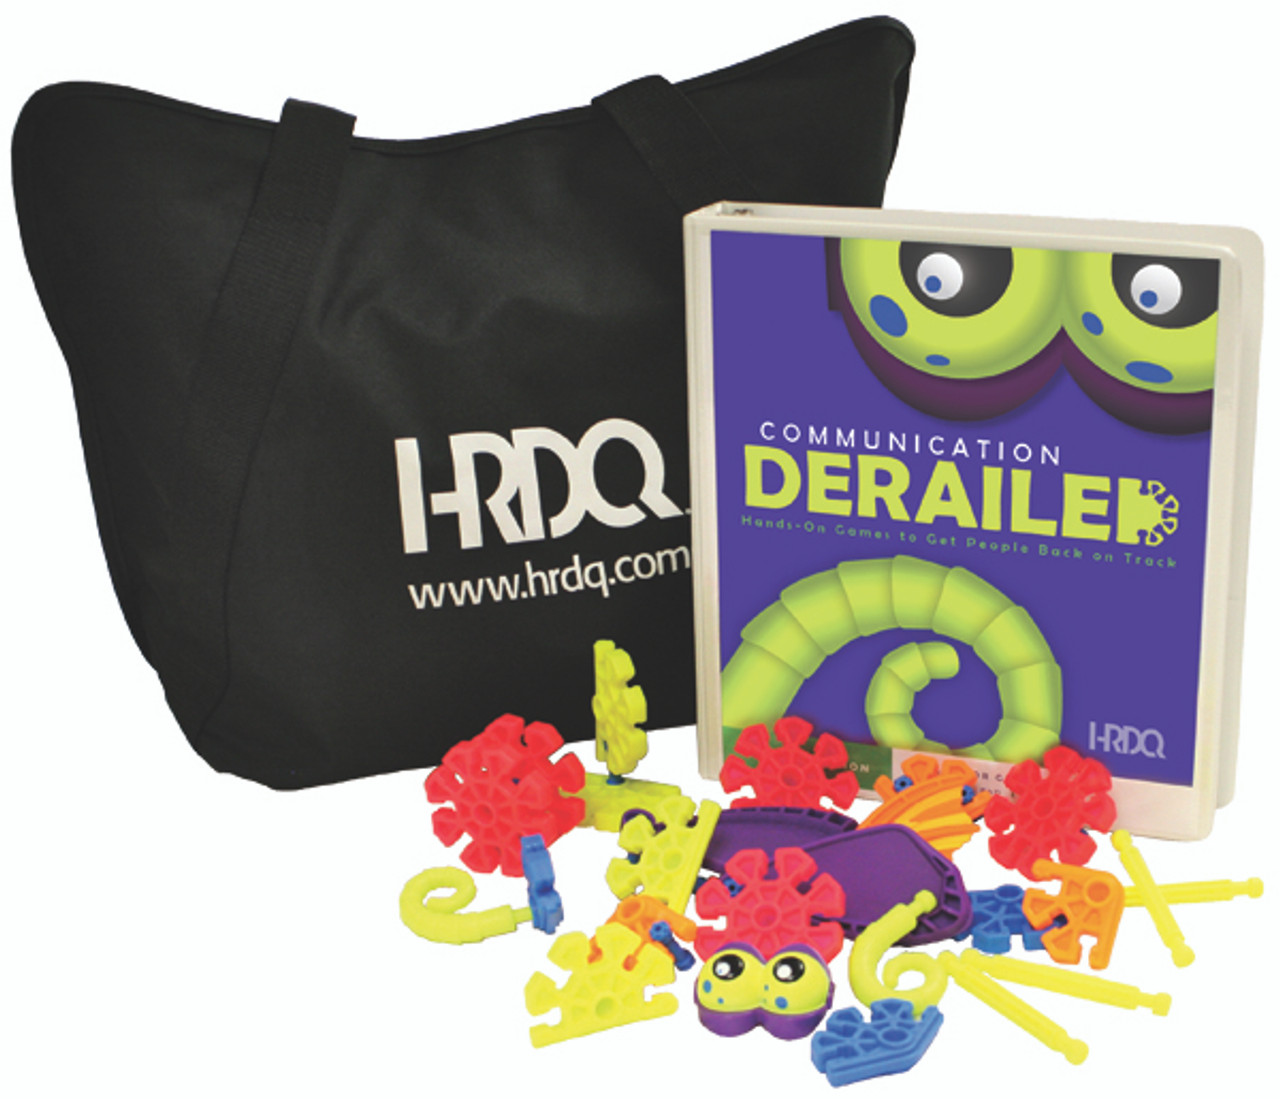 Communication Derailed Game Kit with bag